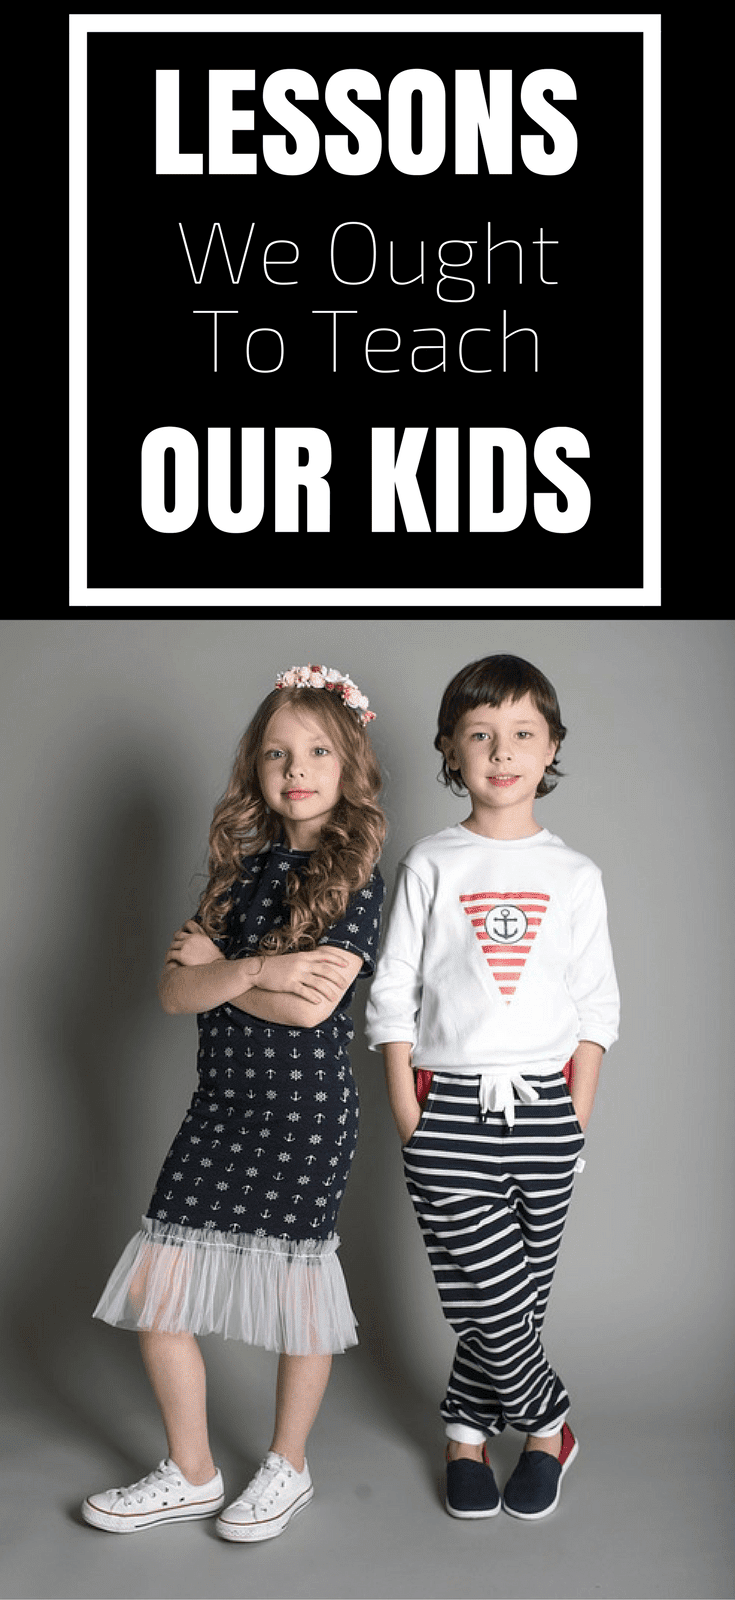 Lessons We Ought To Teach Our Kids